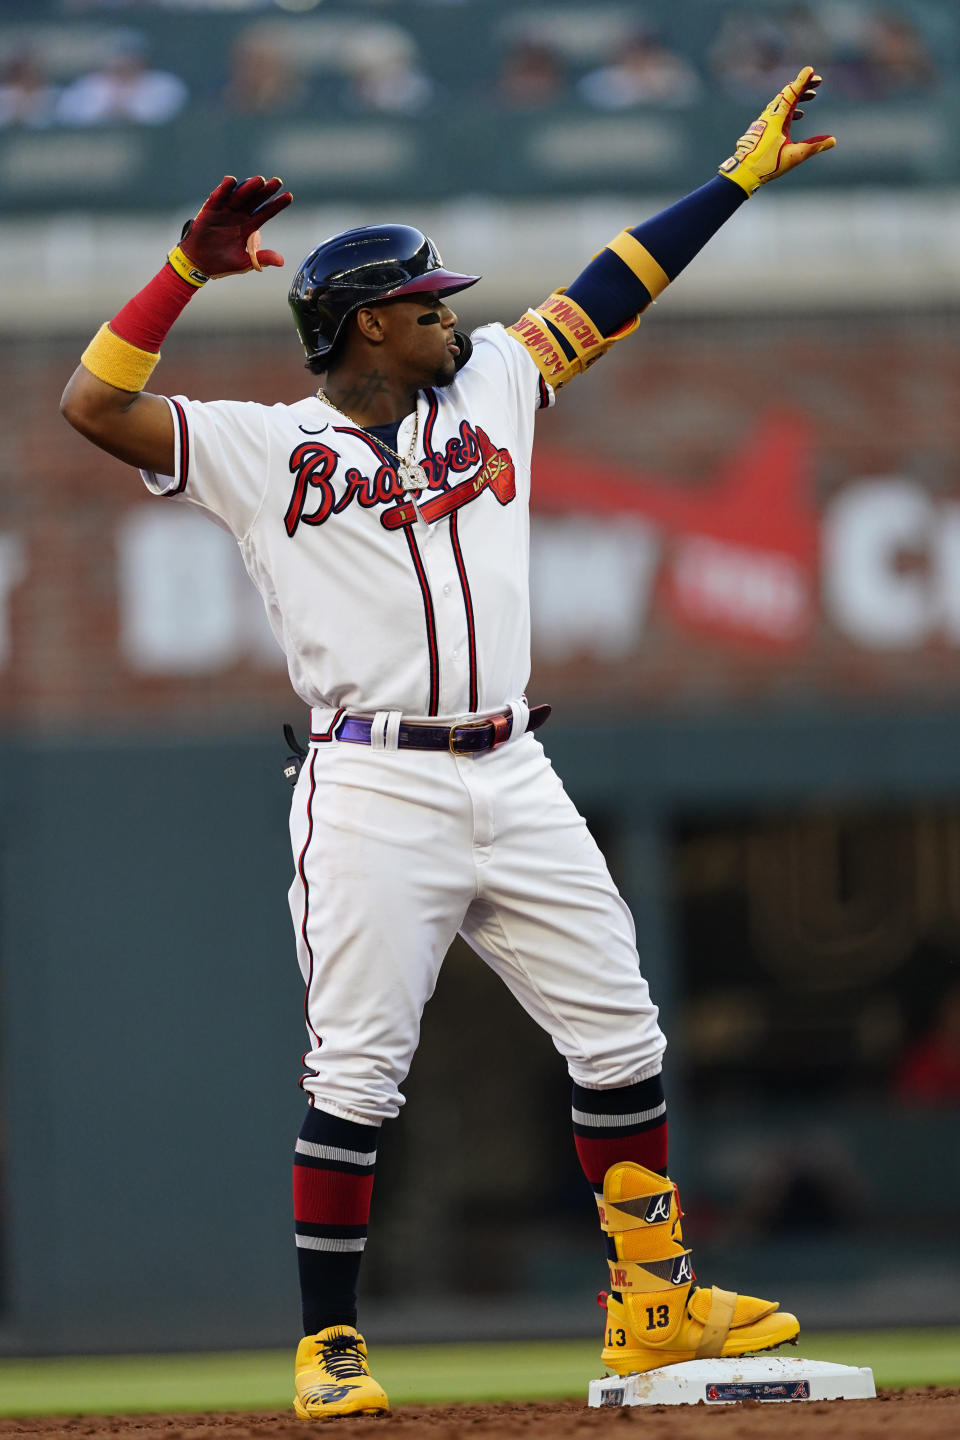 Atlanta Braves right fielder Ronald Acuna Jr., strikes a pose as he stands on second base after hitting a double in the first inning of a baseball game against the Boston Red Sox Wednesday, June 16, 2021, in Atlanta. (AP Photo/John Bazemore)